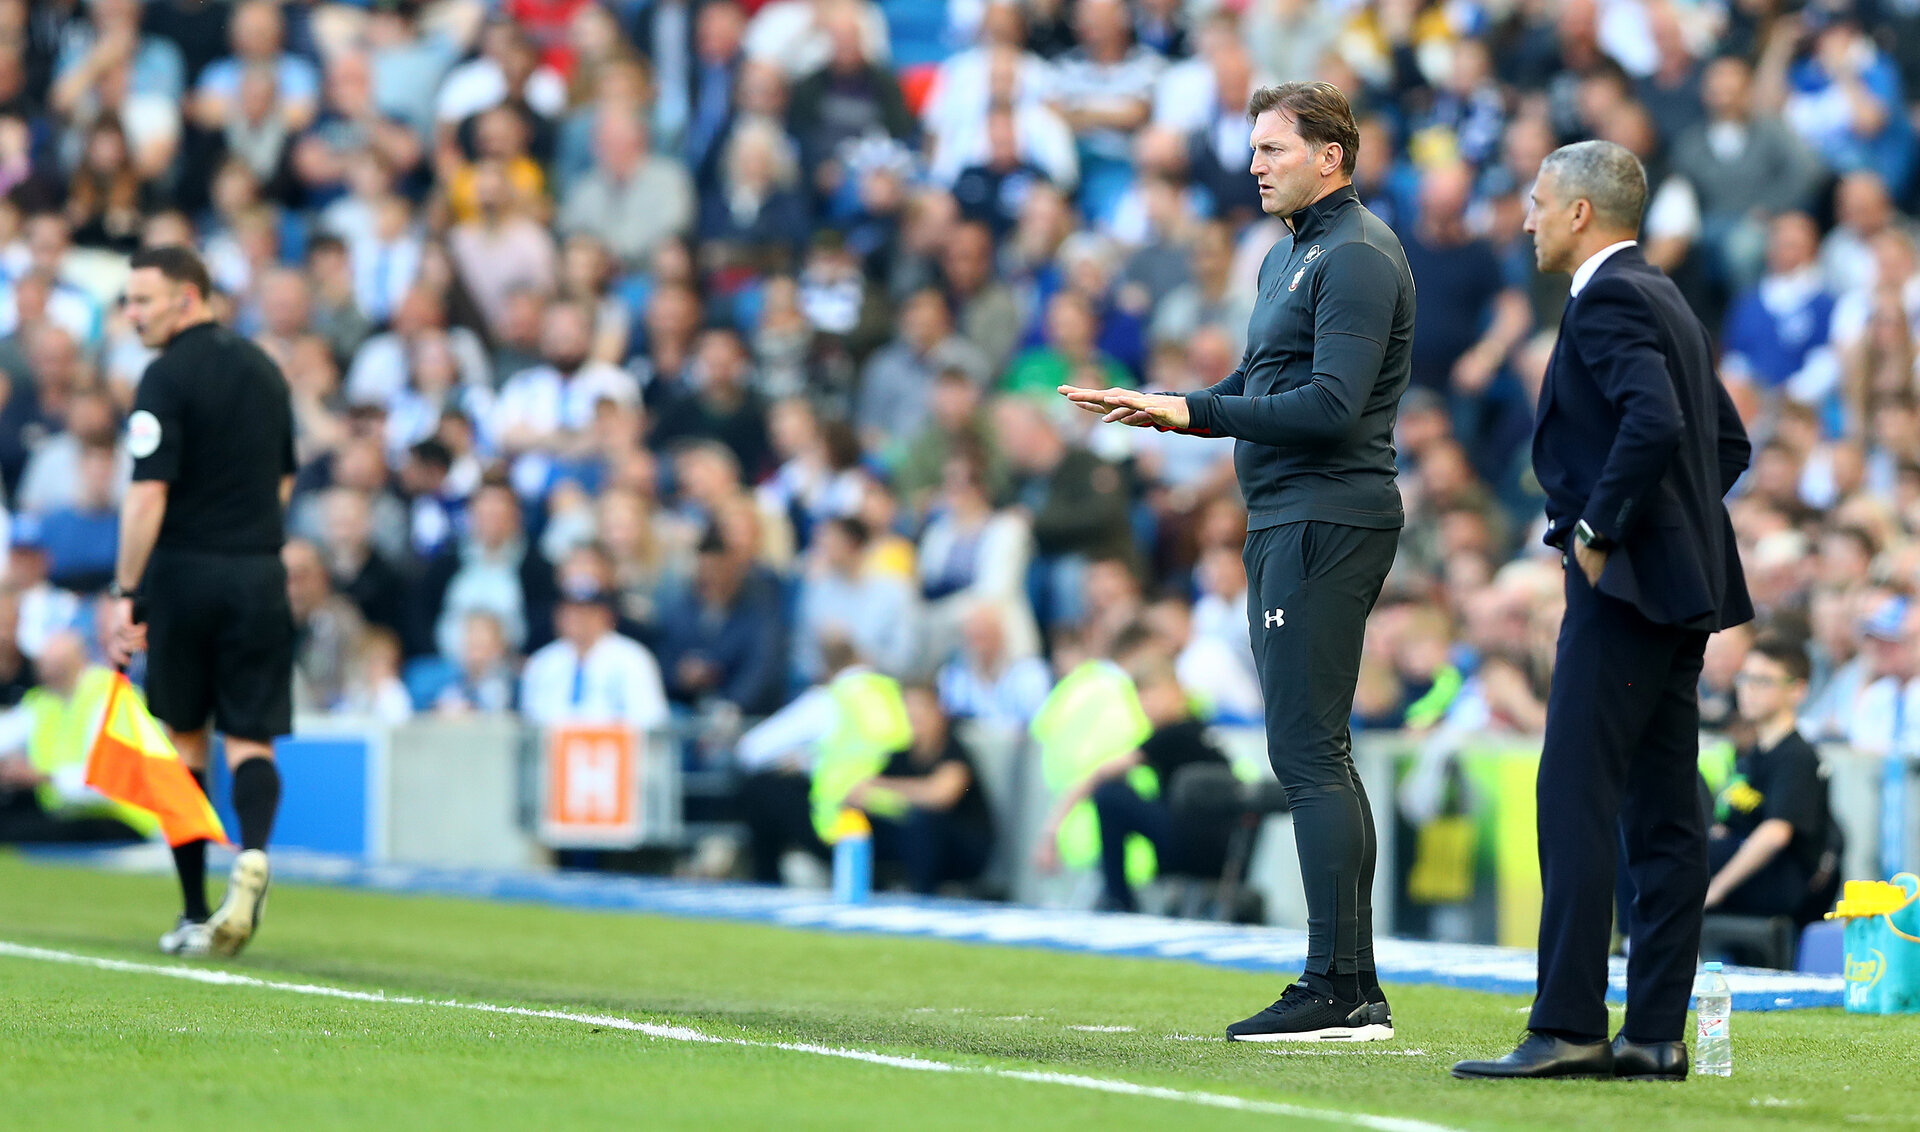 BRIGHTON, ENGLAND - MARCH 30: Ralph Hasenhuttl of Southampton during the Premier League match between Brighton & Hove Albion and Southampton FC at American Express Community Stadium on March 30, 2019 in Brighton, United Kingdom. (Photo by Matt Watson/Southampton FC via Getty Images)